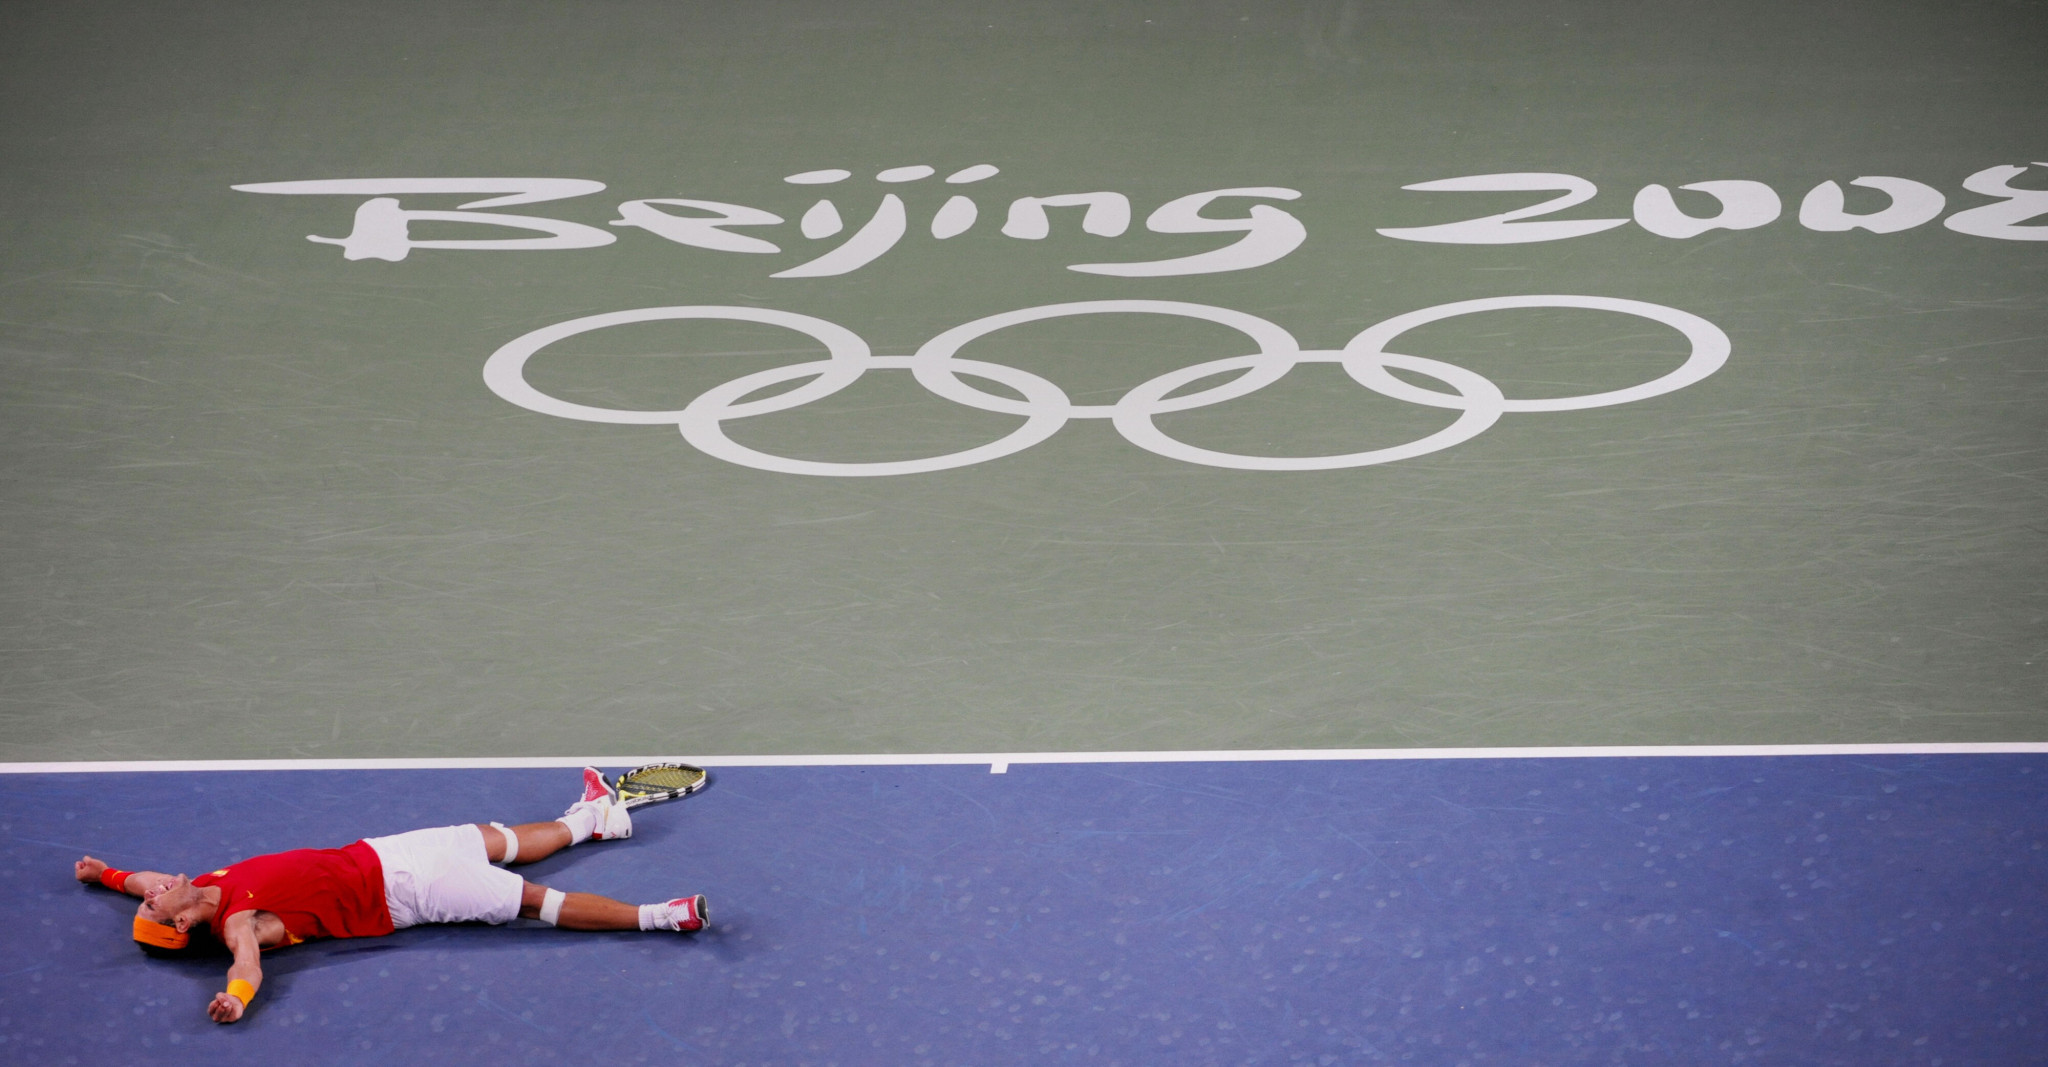 Rafael Nadal won the men's singles title at Beijing 2008 ©Getty Images